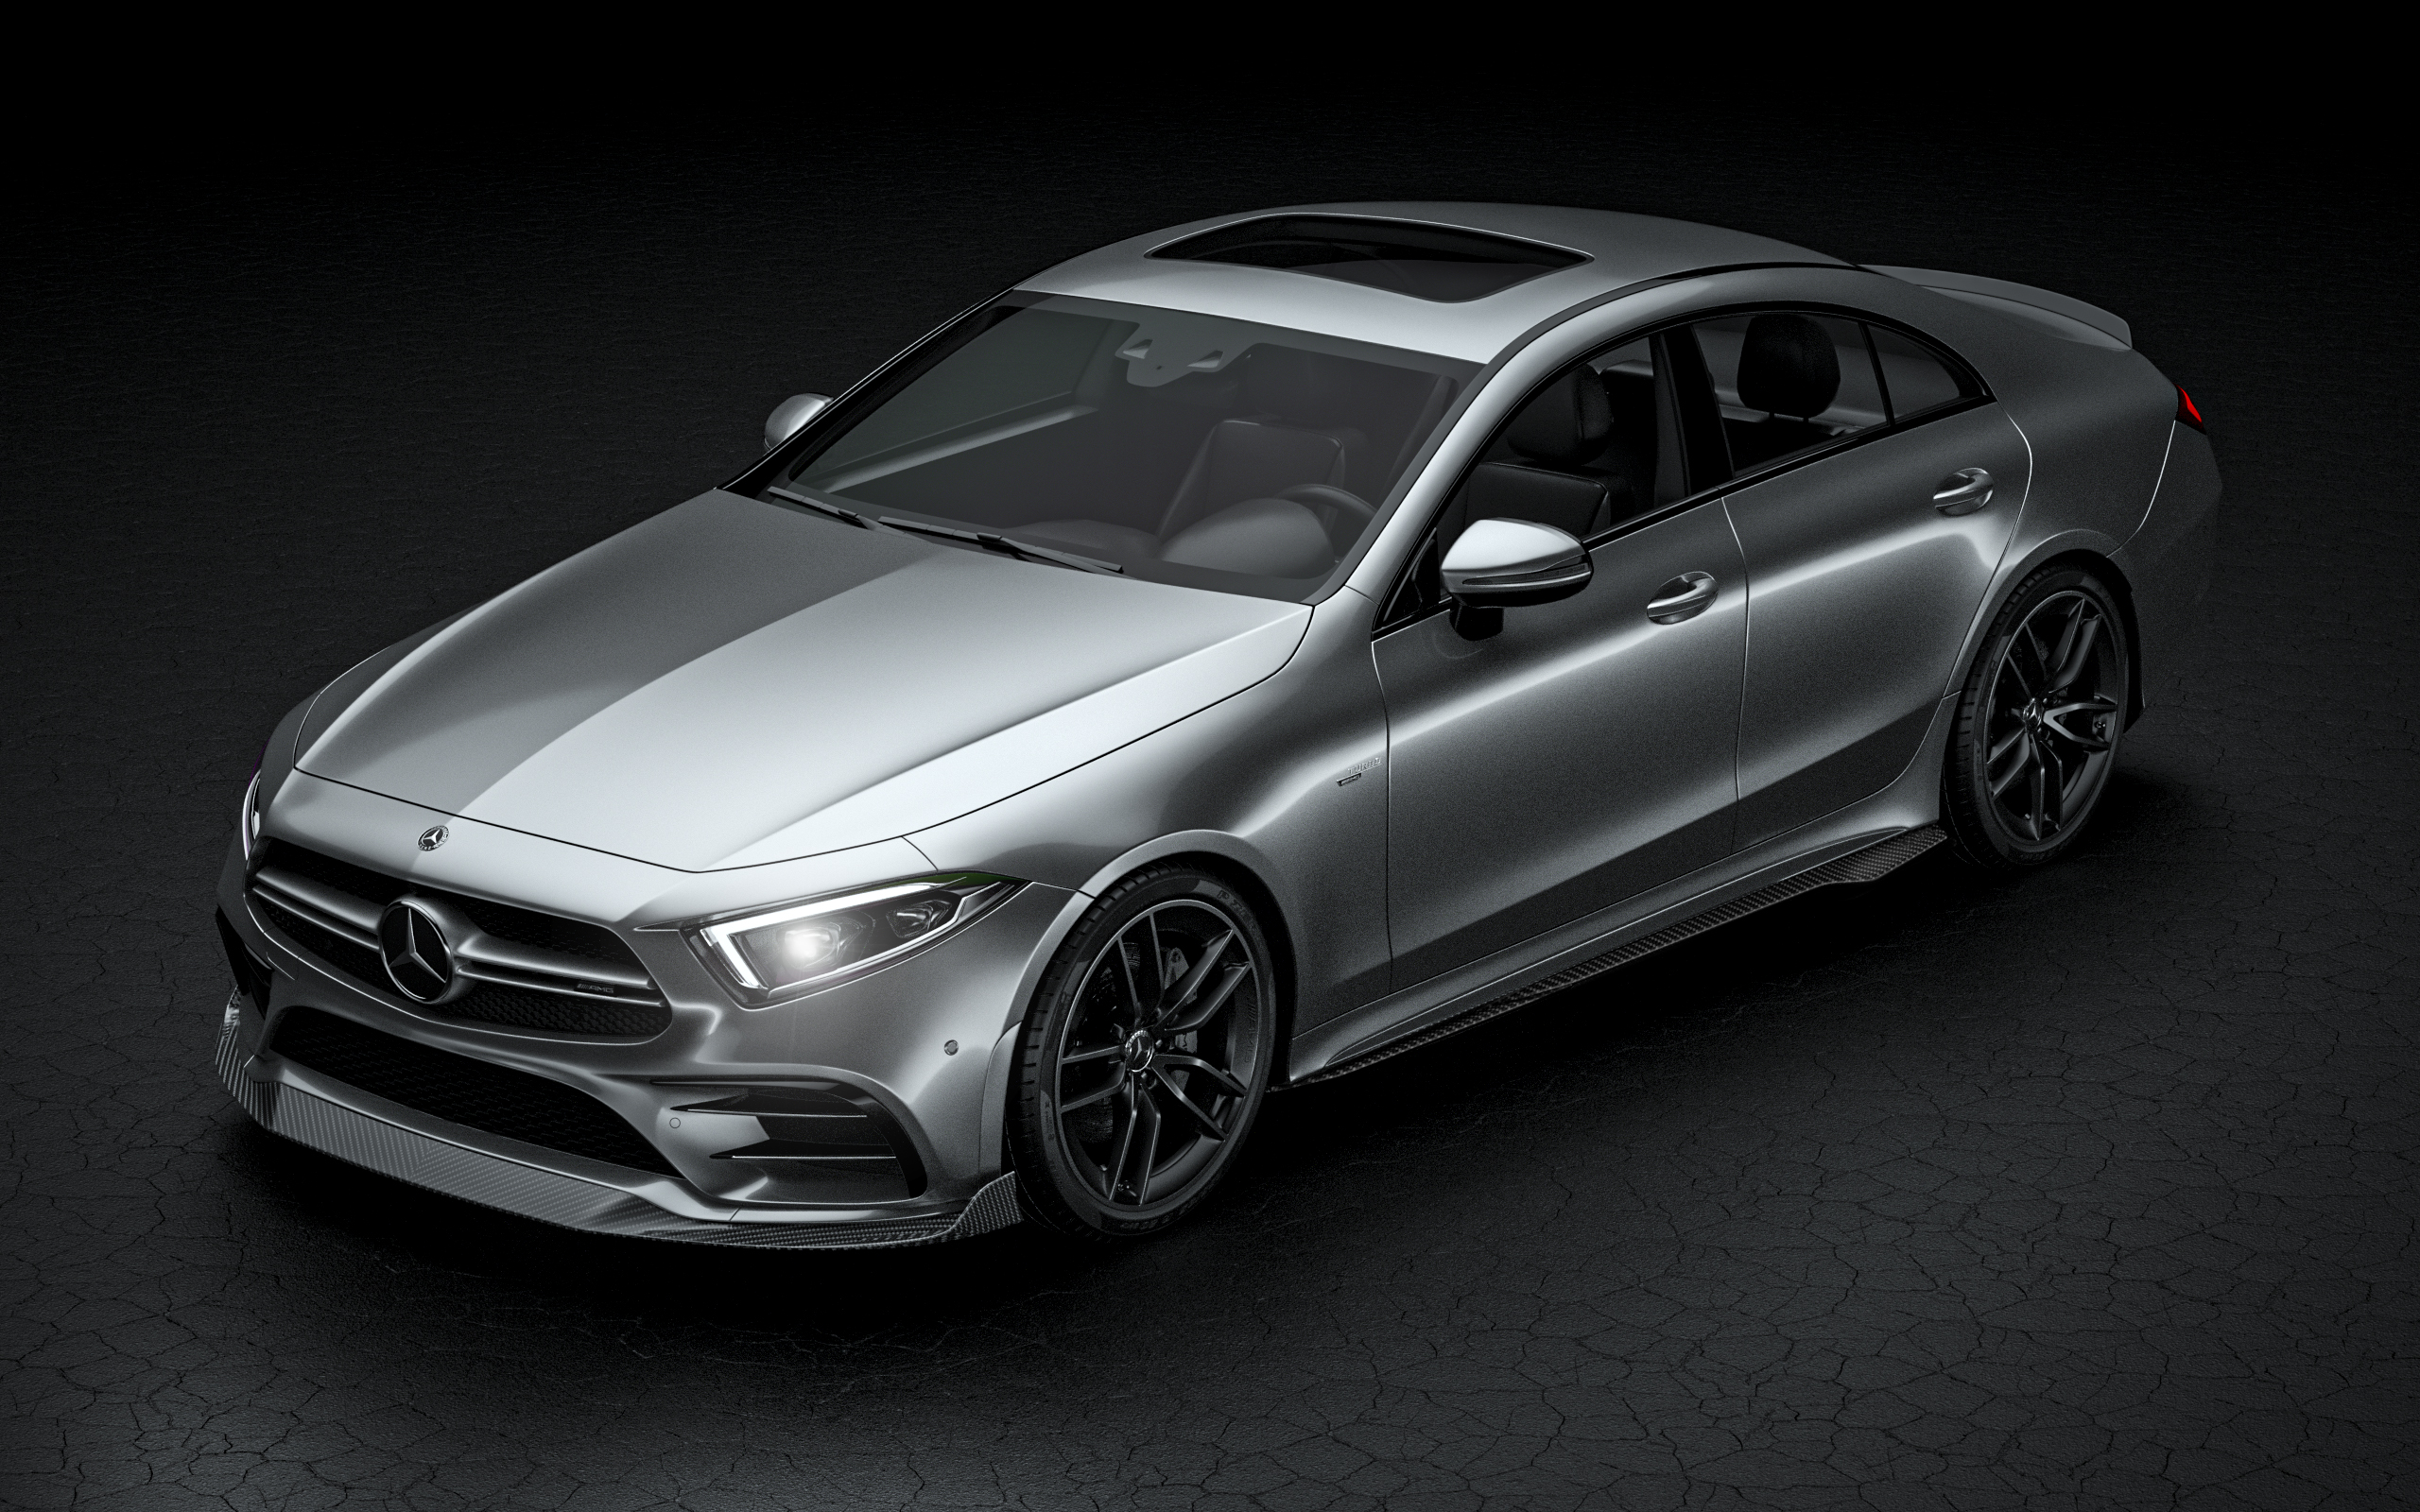 Mercedes-Benz CLS53 AMG with bodykit by ZACOE